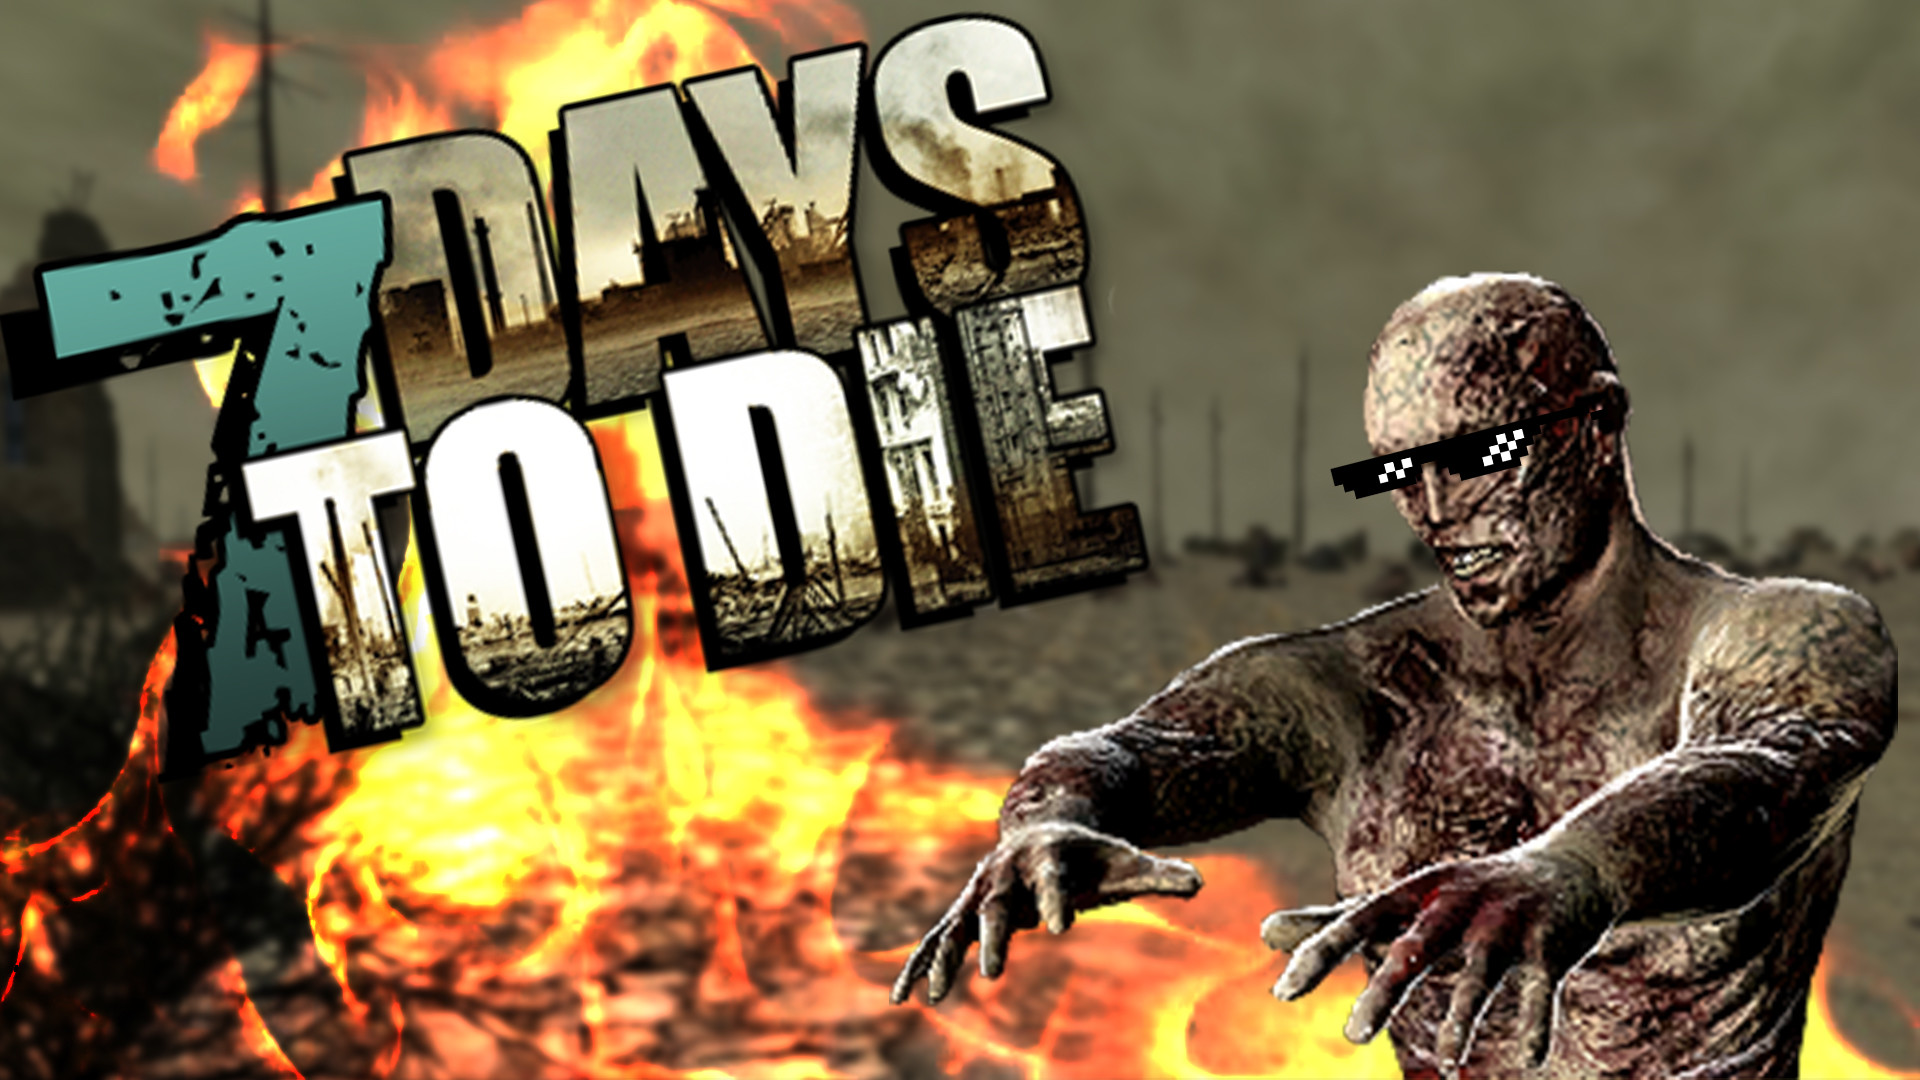 … 7 Days To Die Icon by osflipper09